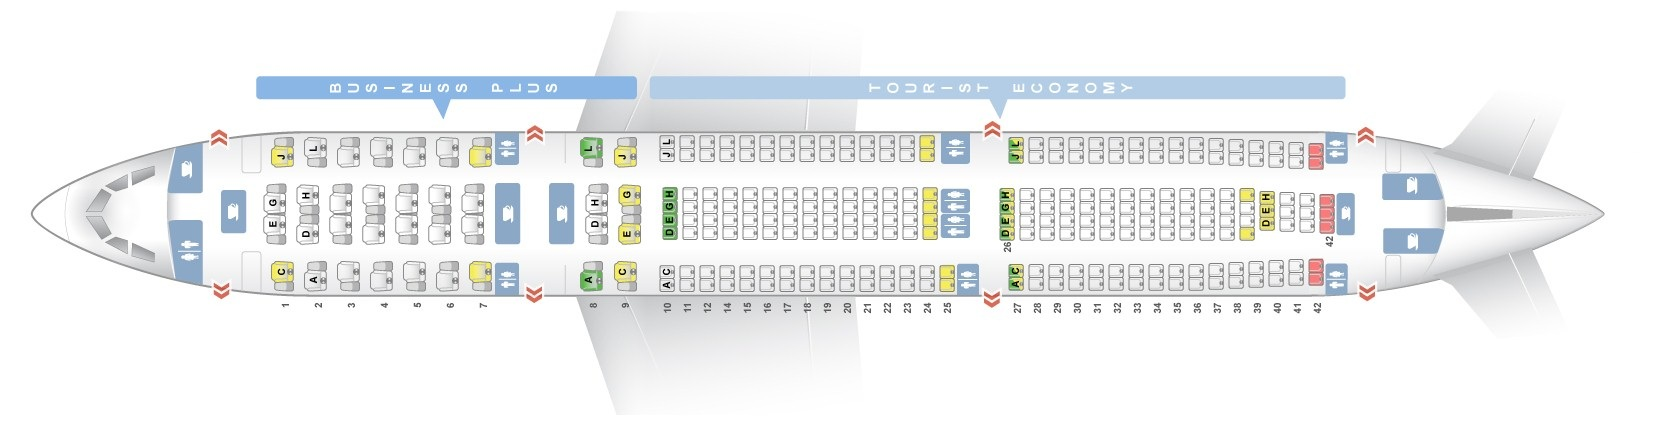 Seat map Airbus A330-300 Iberia. Best seats in the plane